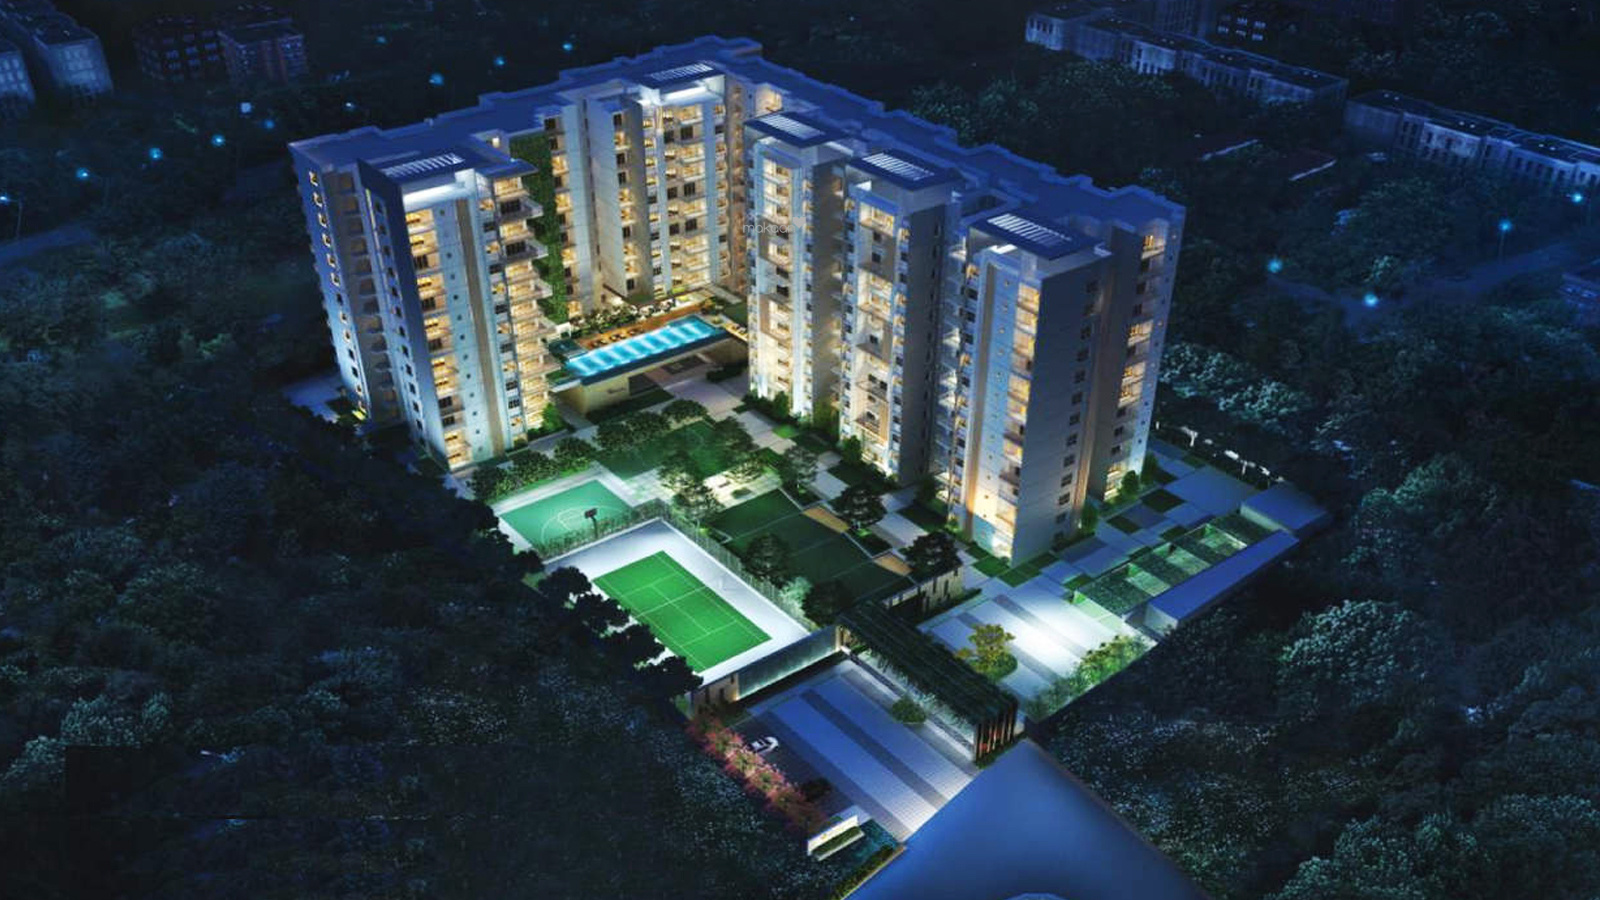 1995 sq ft 3BHK 3BHK+3T (1,995 sq ft) Property By Proptiger In Reflection, Bellandur